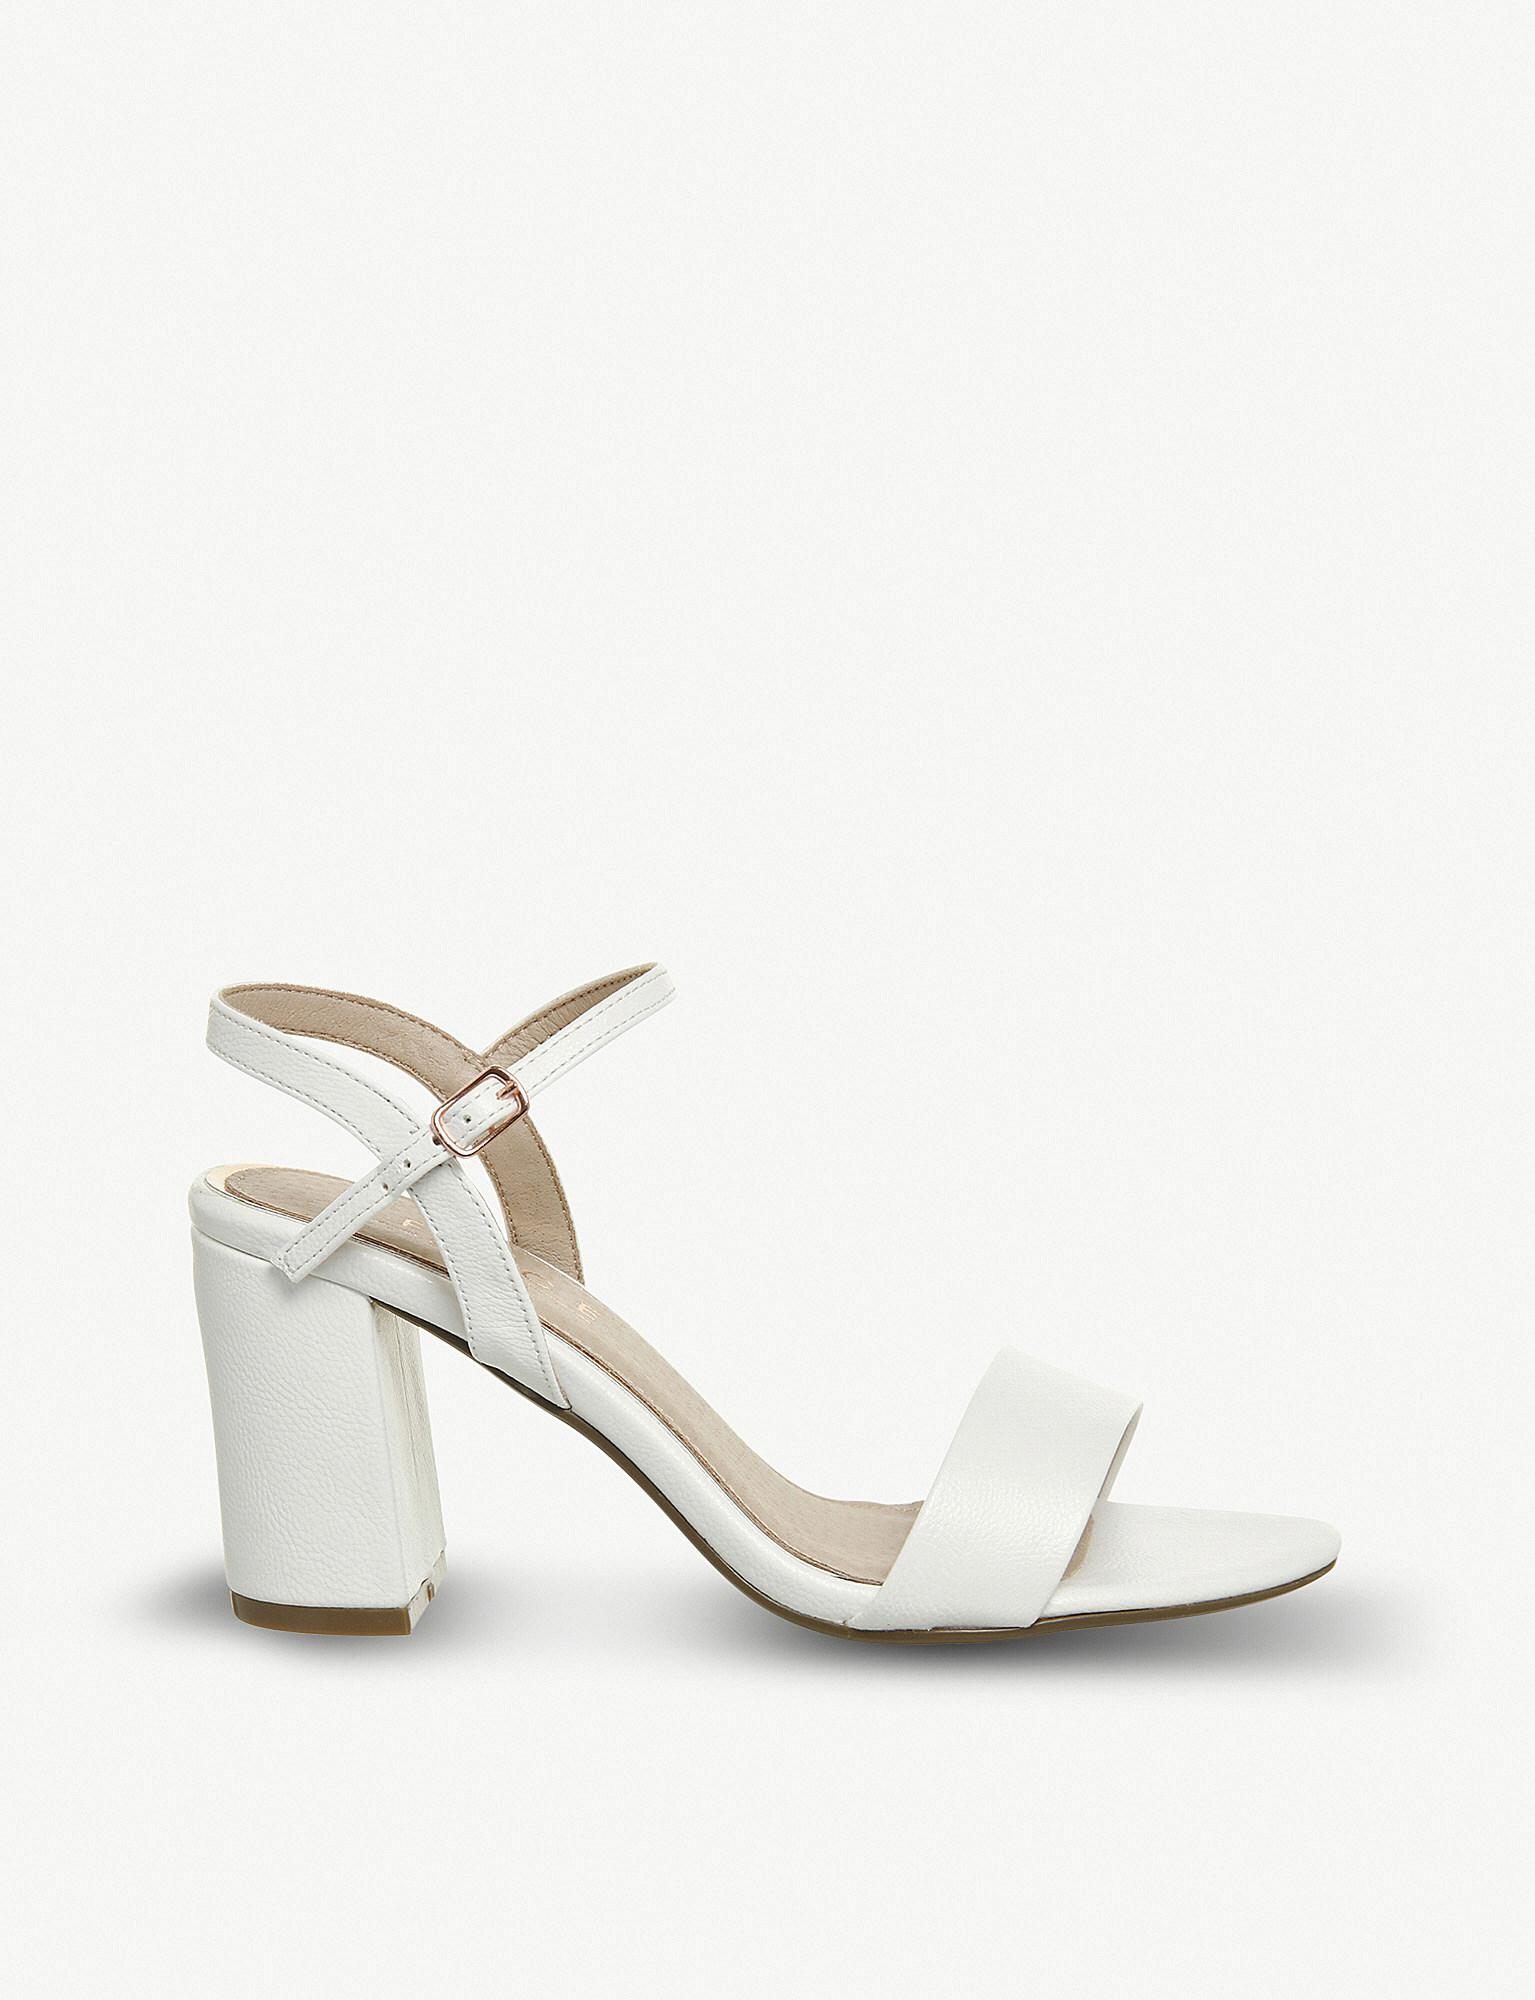 7a6222fbfeaf Office - White Modesty Two-part Heeled Sandals - Lyst. View fullscreen